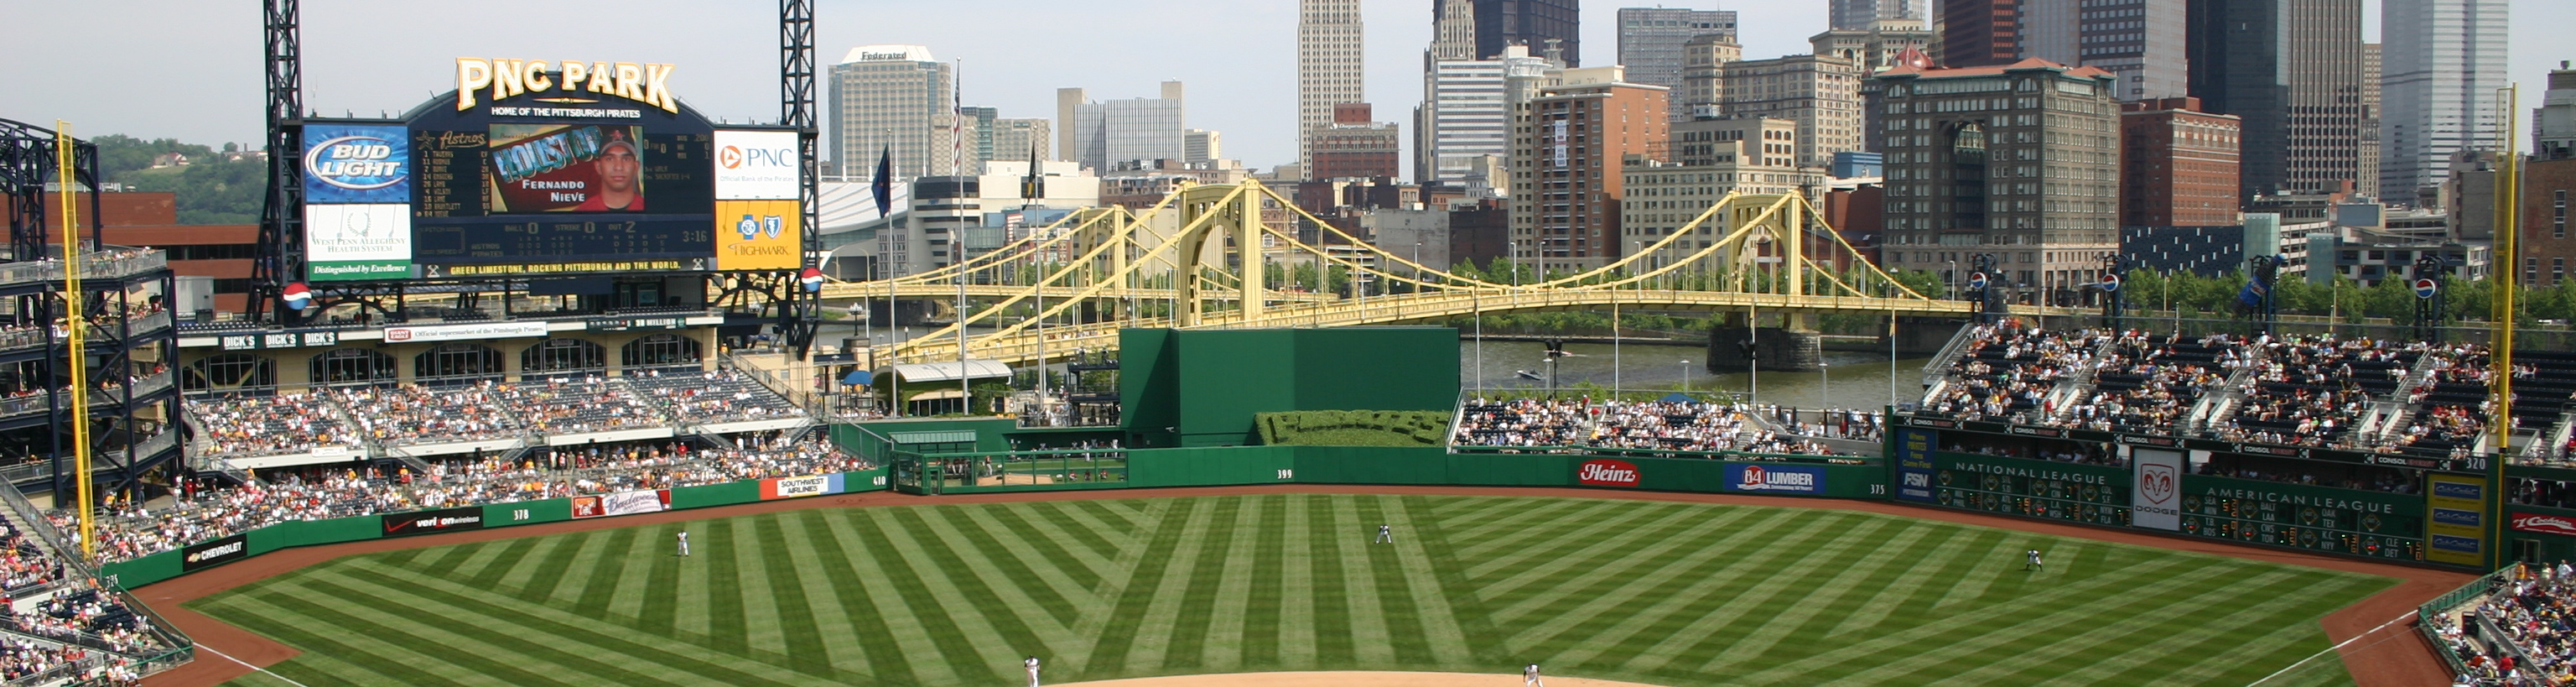 PNC Park,midwest baseball trips,group baseball tours